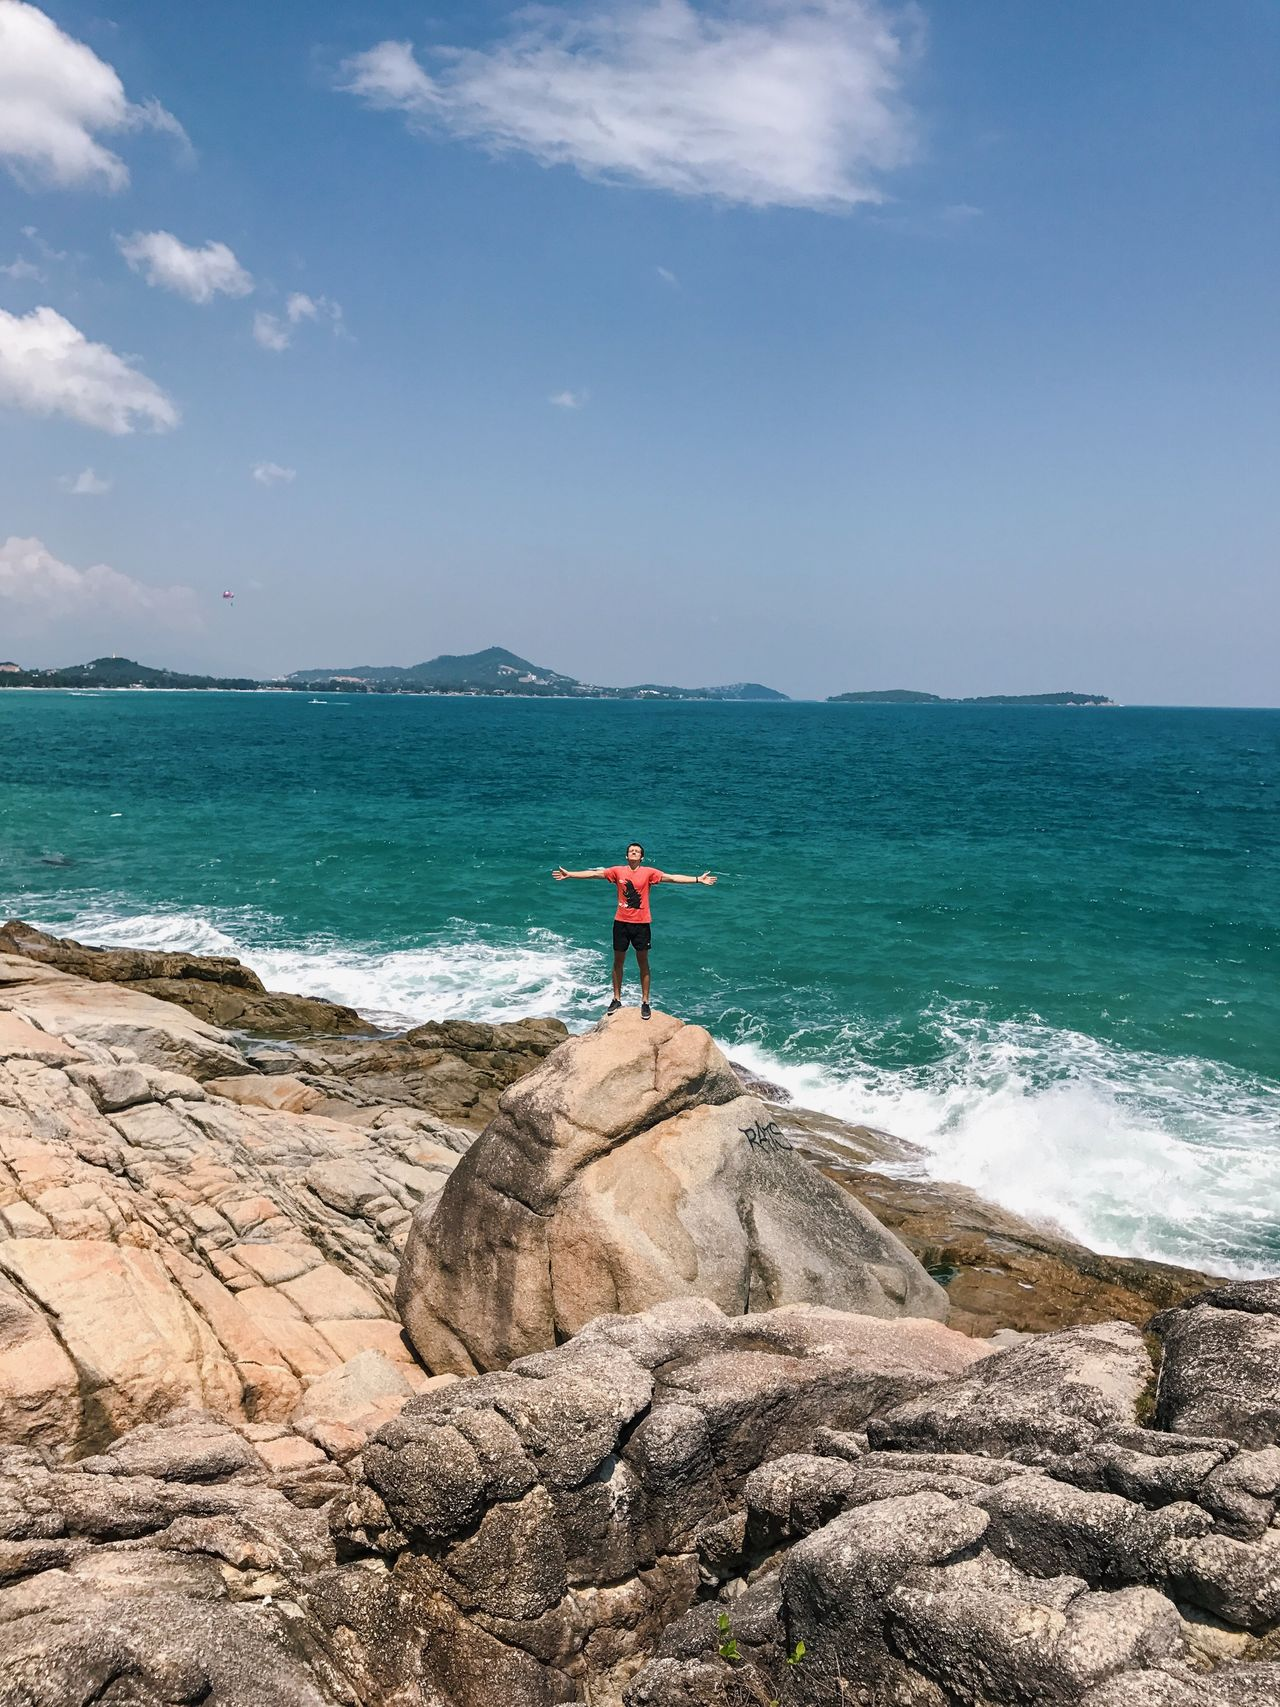 Adult Adults Only Adventure Athleisure Beach Beauty In Nature Climbing Cloud - Sky Day Full Length Healthy Lifestyle Mid Adult Nature One Man Only One Person Only Men Outdoors People Scenics Sea Sky Sport Tourism Travel Destinations Vacations